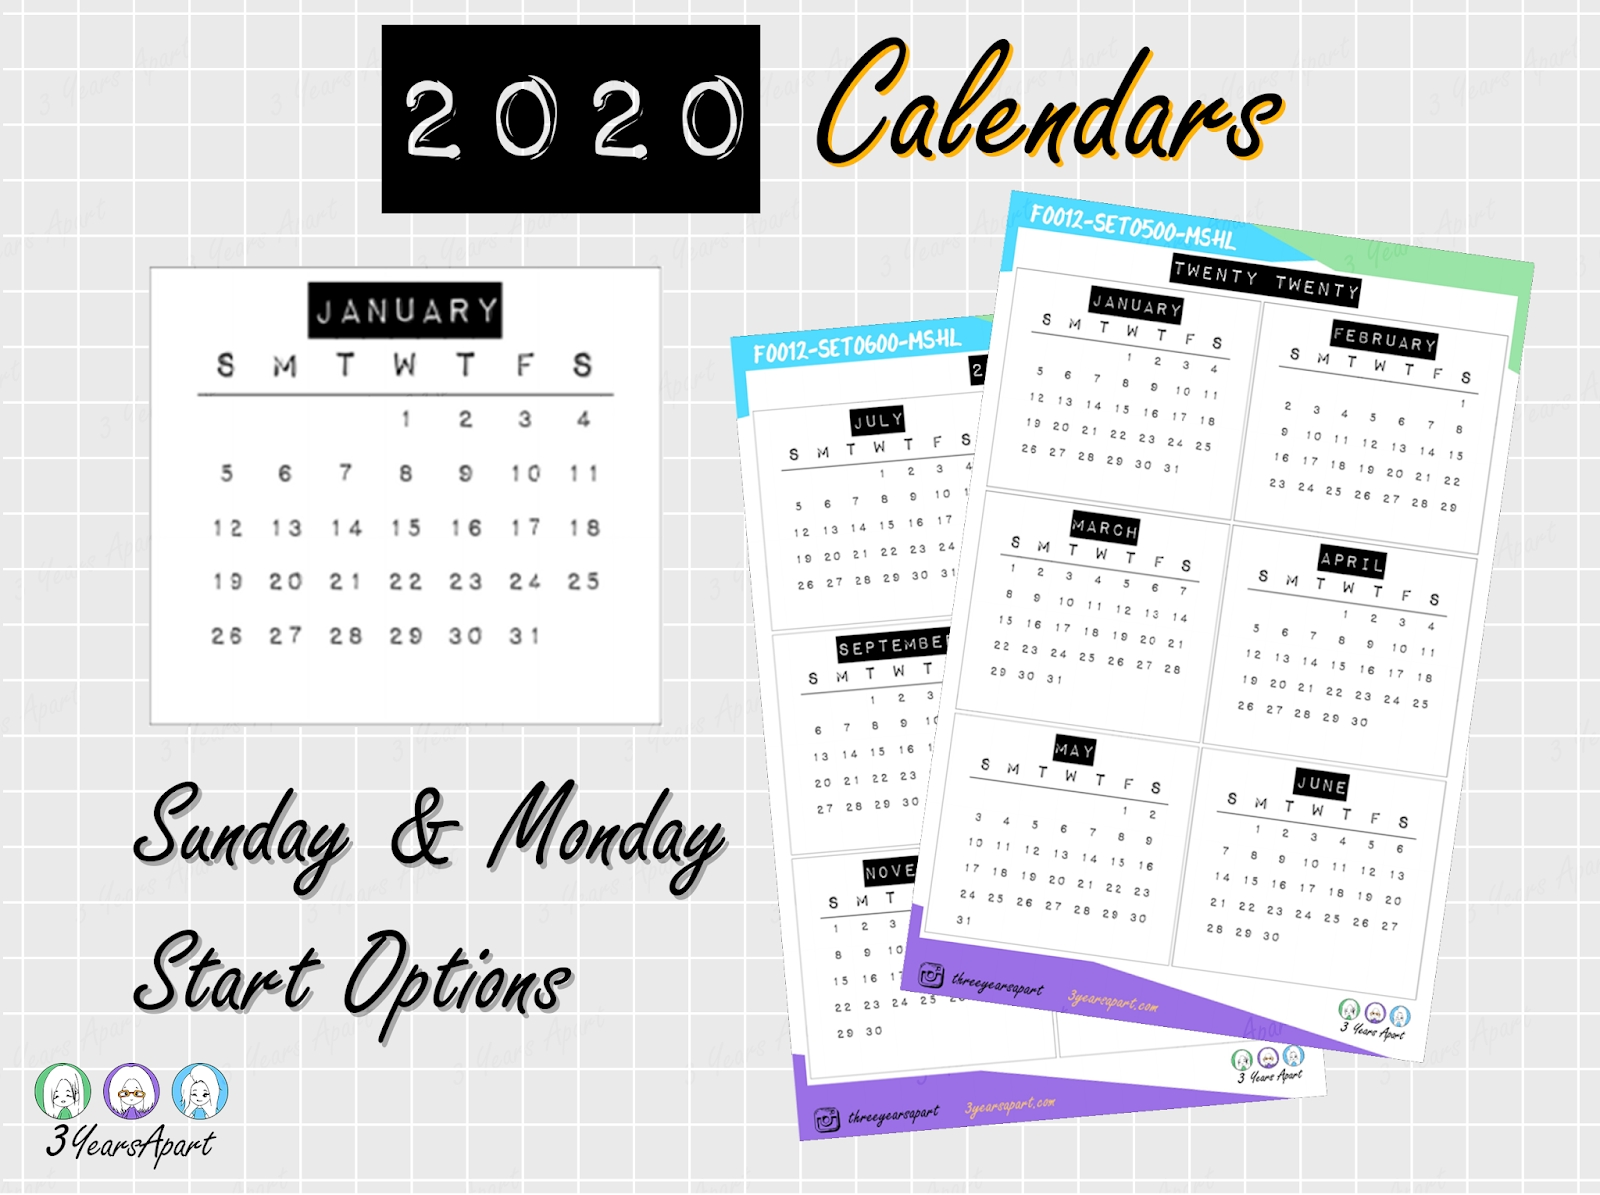 2020 Yearly Calendar Free Printable | Bullet Journal And with Year At A Glance 2020 Free Printable